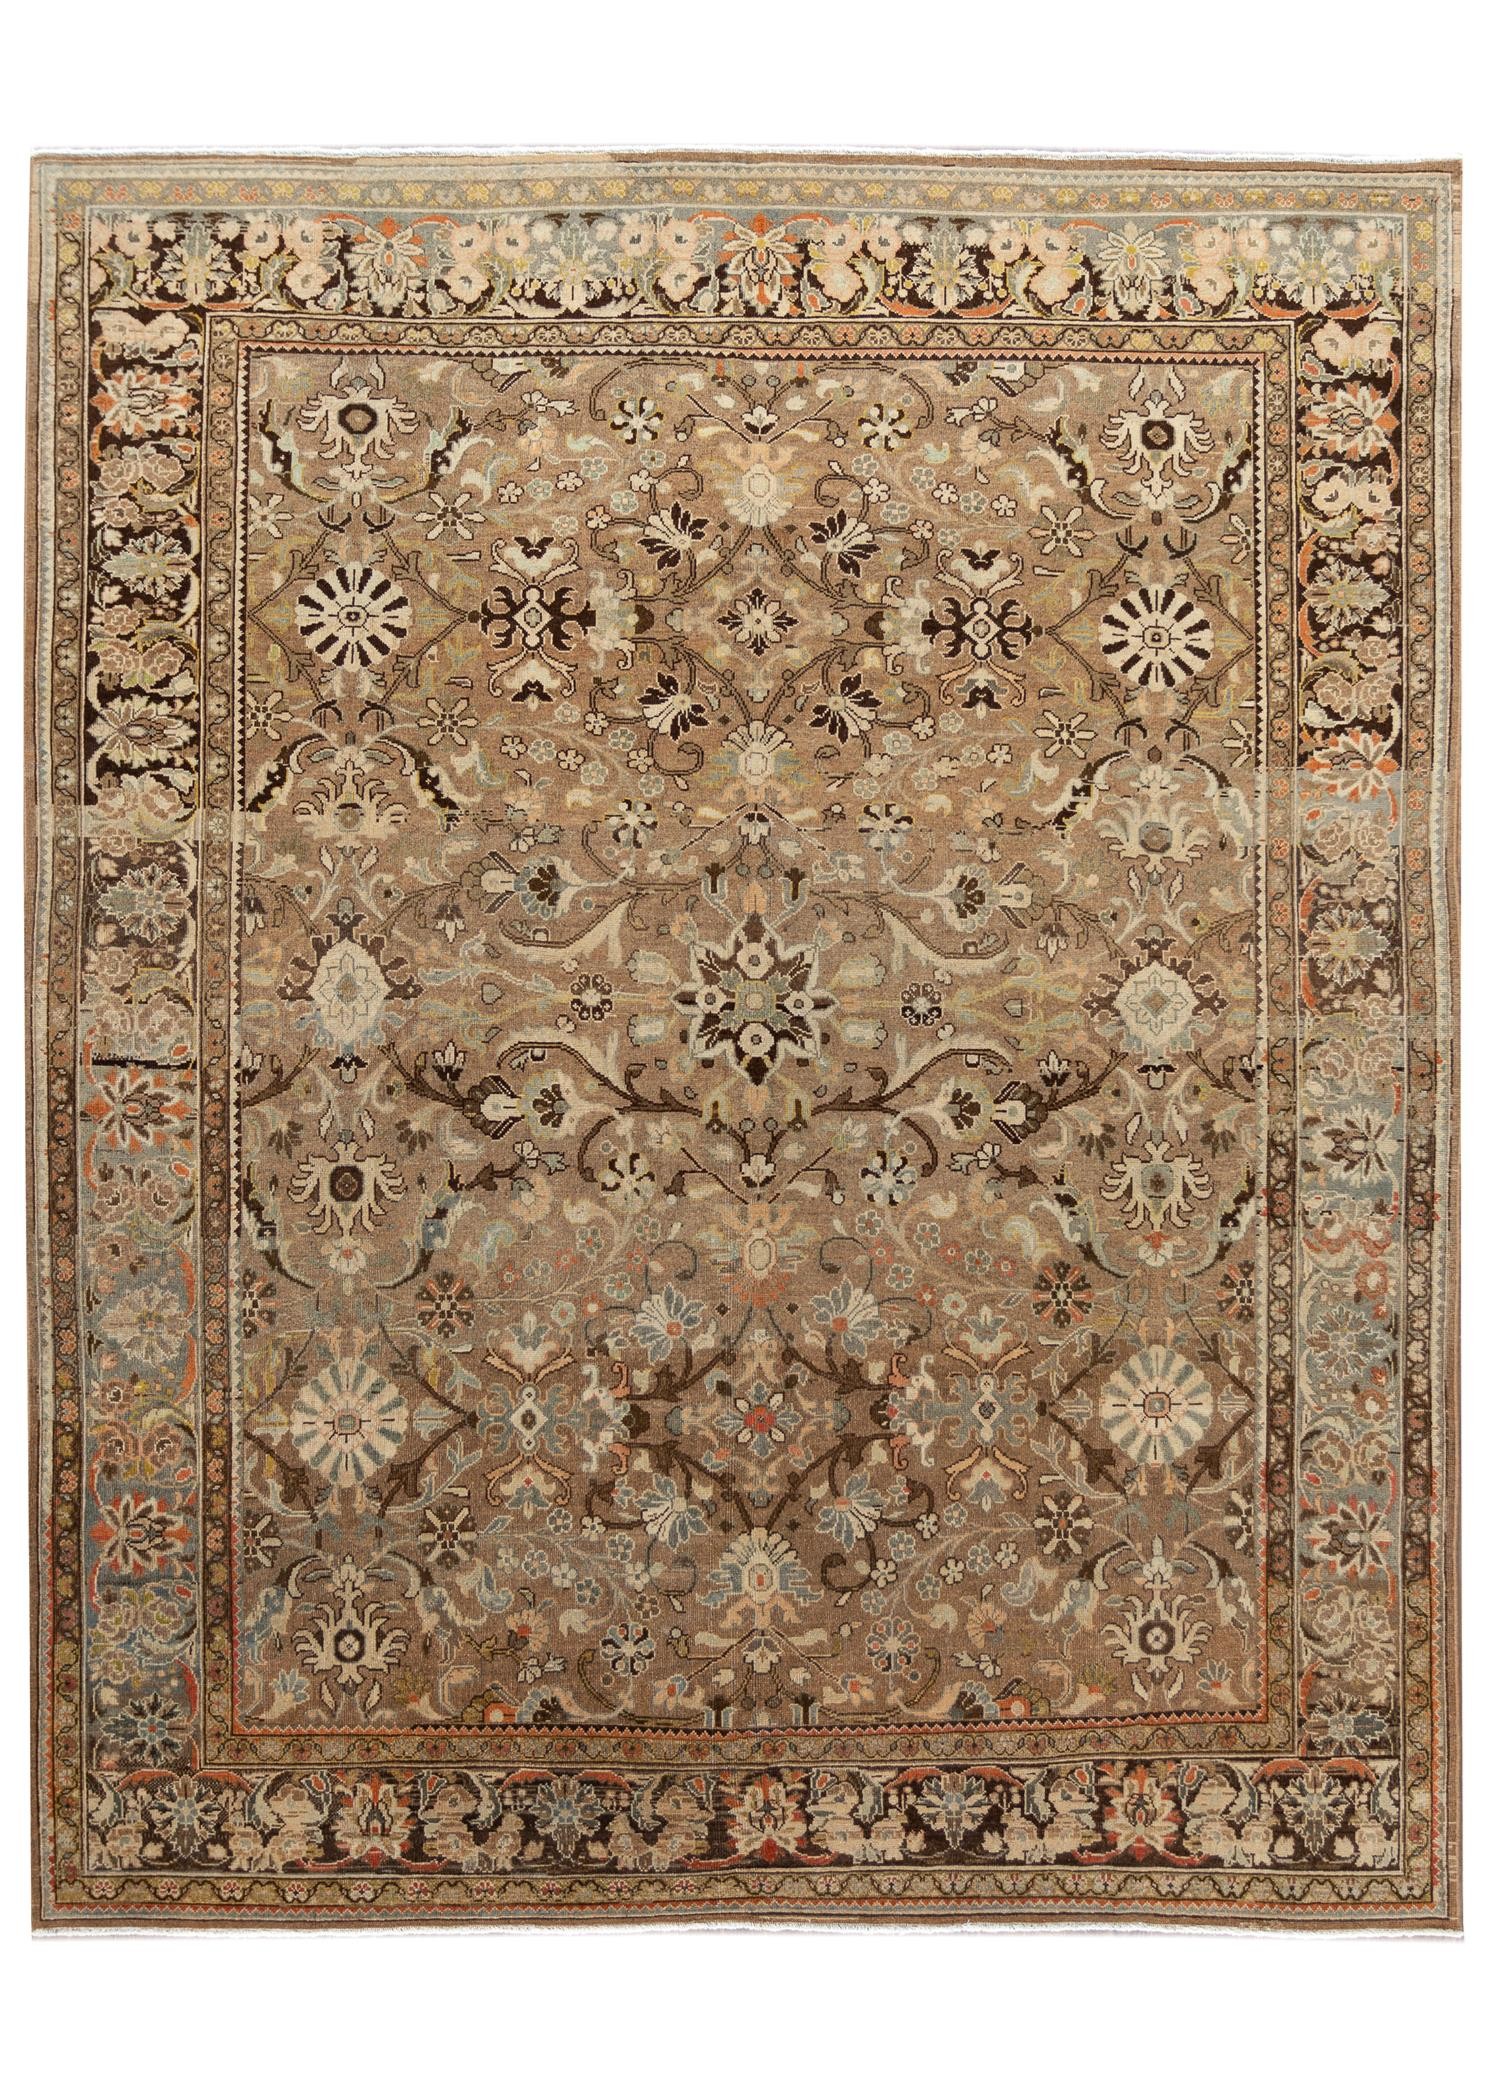 Antique Sultanabad Rug, #10235246, 9X11